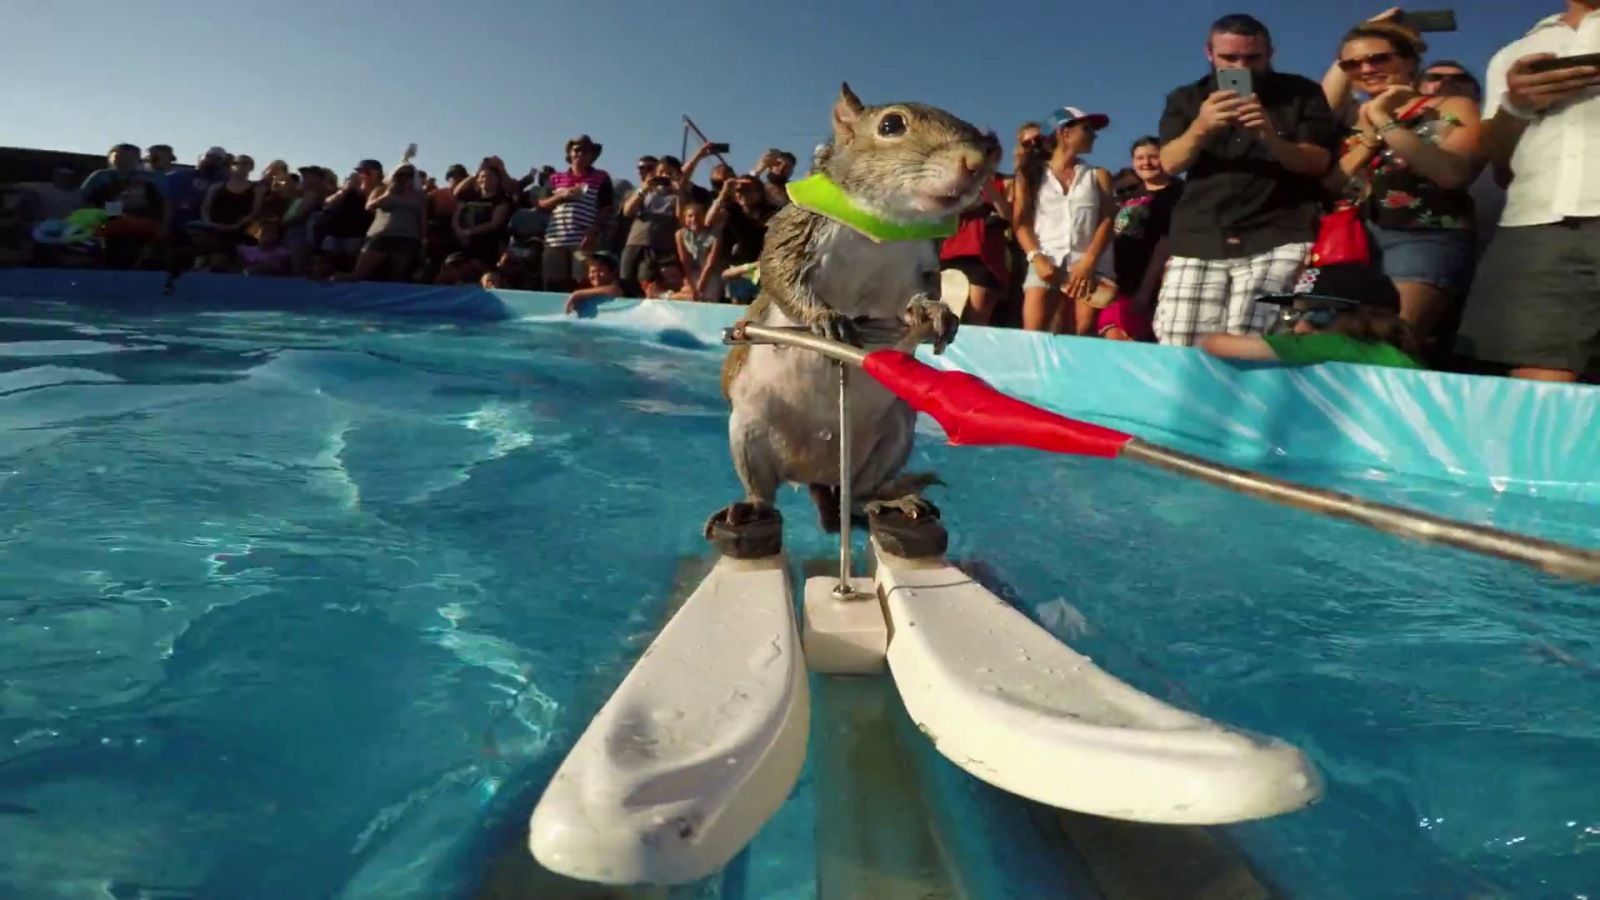 Water Skiing Squirrel GoPro Video Shows Dramatic Close Up